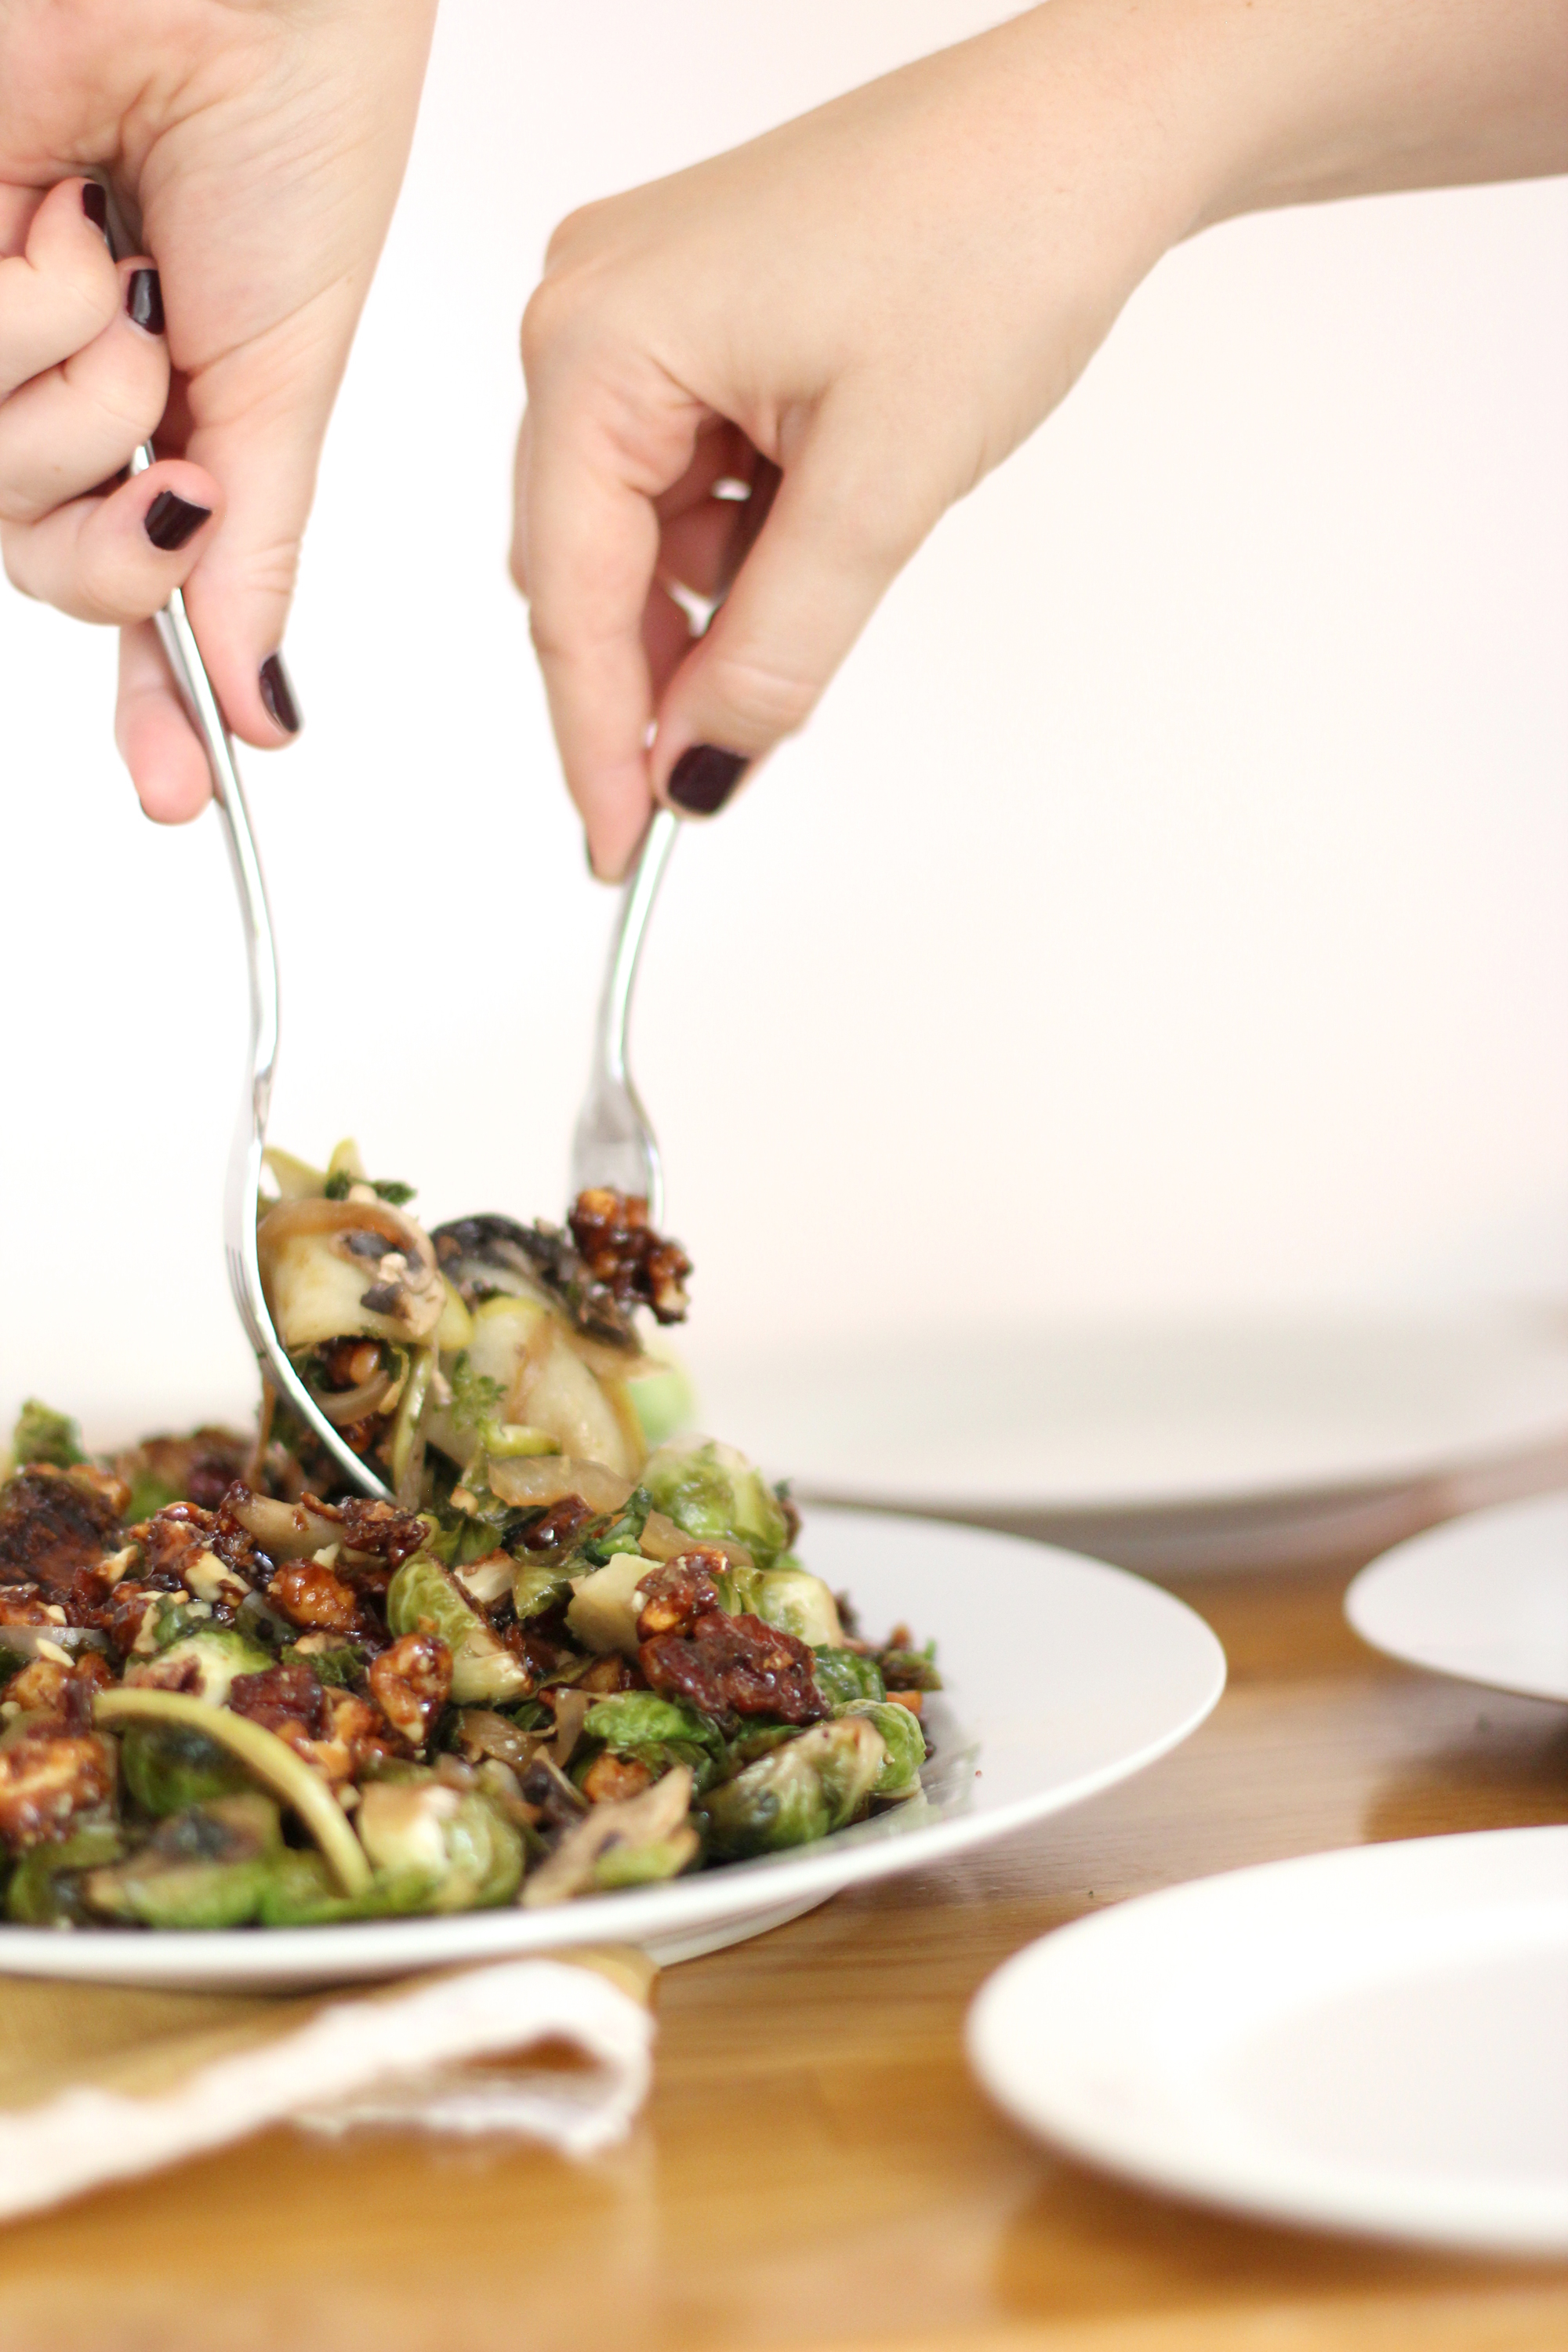 Brussels Sprouts with Candied Bacon and Walnuts - This one is a total crowd-pleaser; plus more than 125+ incredible fall recipes that everyone should try. Click through for the recipes. #fallrecipe #fallrecipes #thanksgiving #thanksgivingrecipe | glitterinc.com | @glitterinc